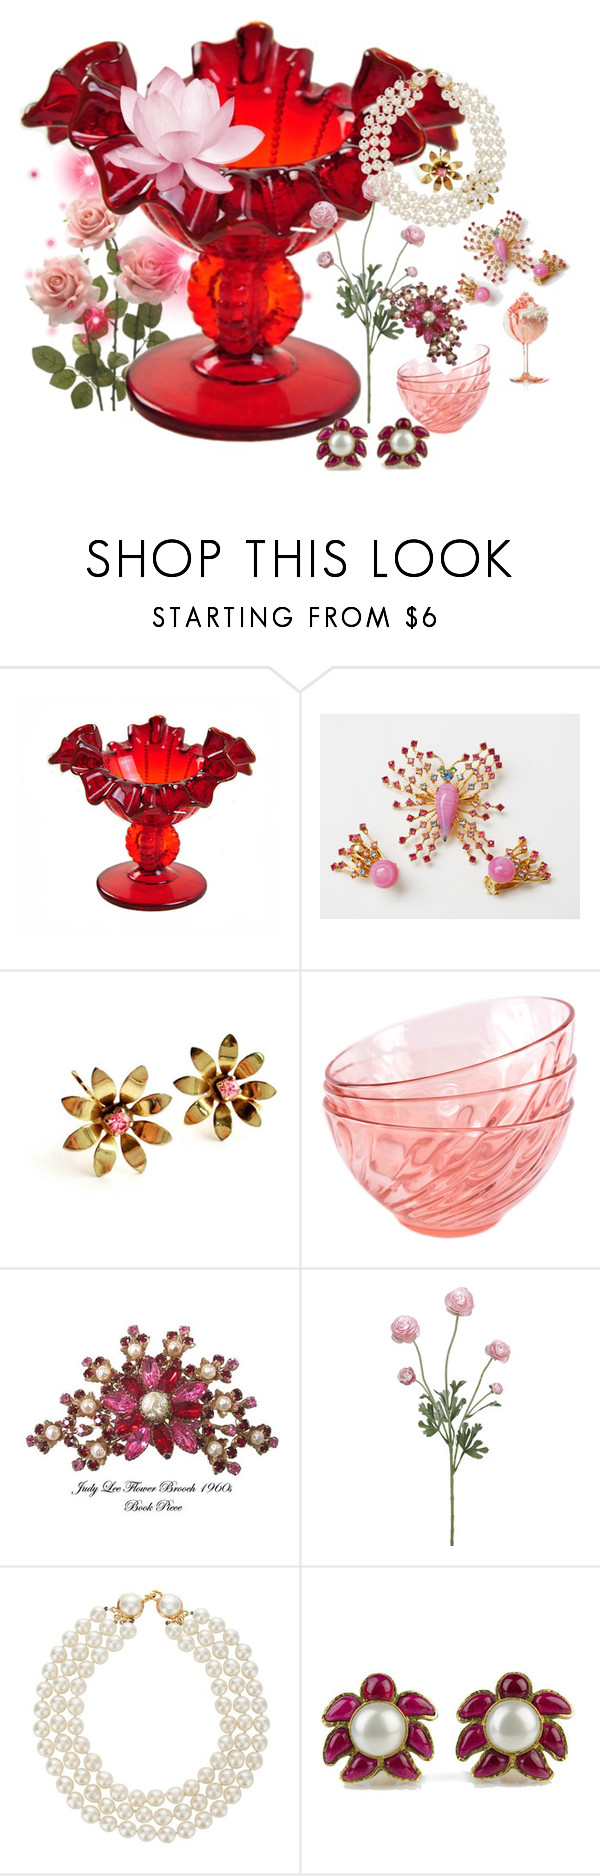 """""""Make It Pretty!"""" by plumsandhoneyvintage ❤ liked on Polyvore featuring interior, interiors, interior design, home, home decor, interior decorating, Fenton, Chanel and vintage"""